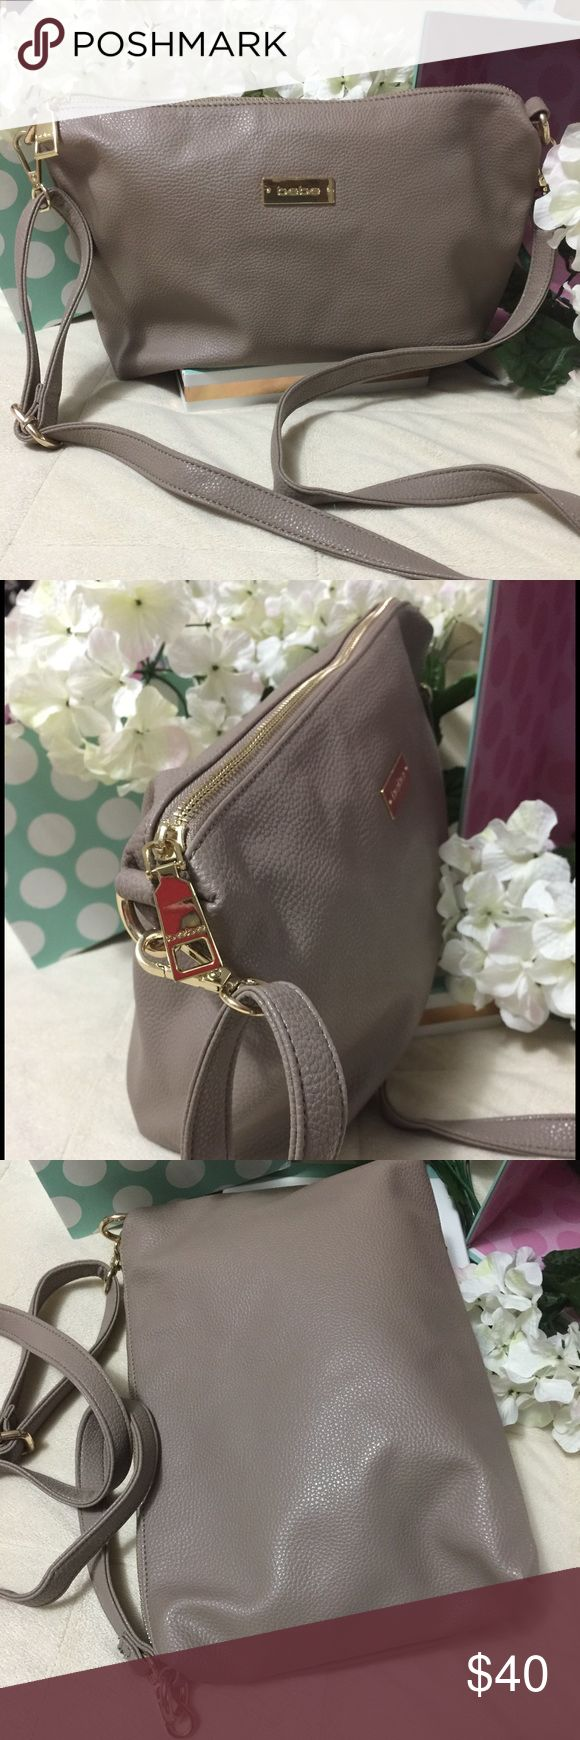 """NWOT Bebe Purse/Crossbody Beige Bag NWOT only took tags off.   Gorgeous cream/tan 13"""" x 9"""" Purse that can be worn over the shoulder, as a crossbody, or as a underarm/tote purse for an evening out.   Has Detachable/Adjustable straps. bebe Bags Crossbody Bags"""